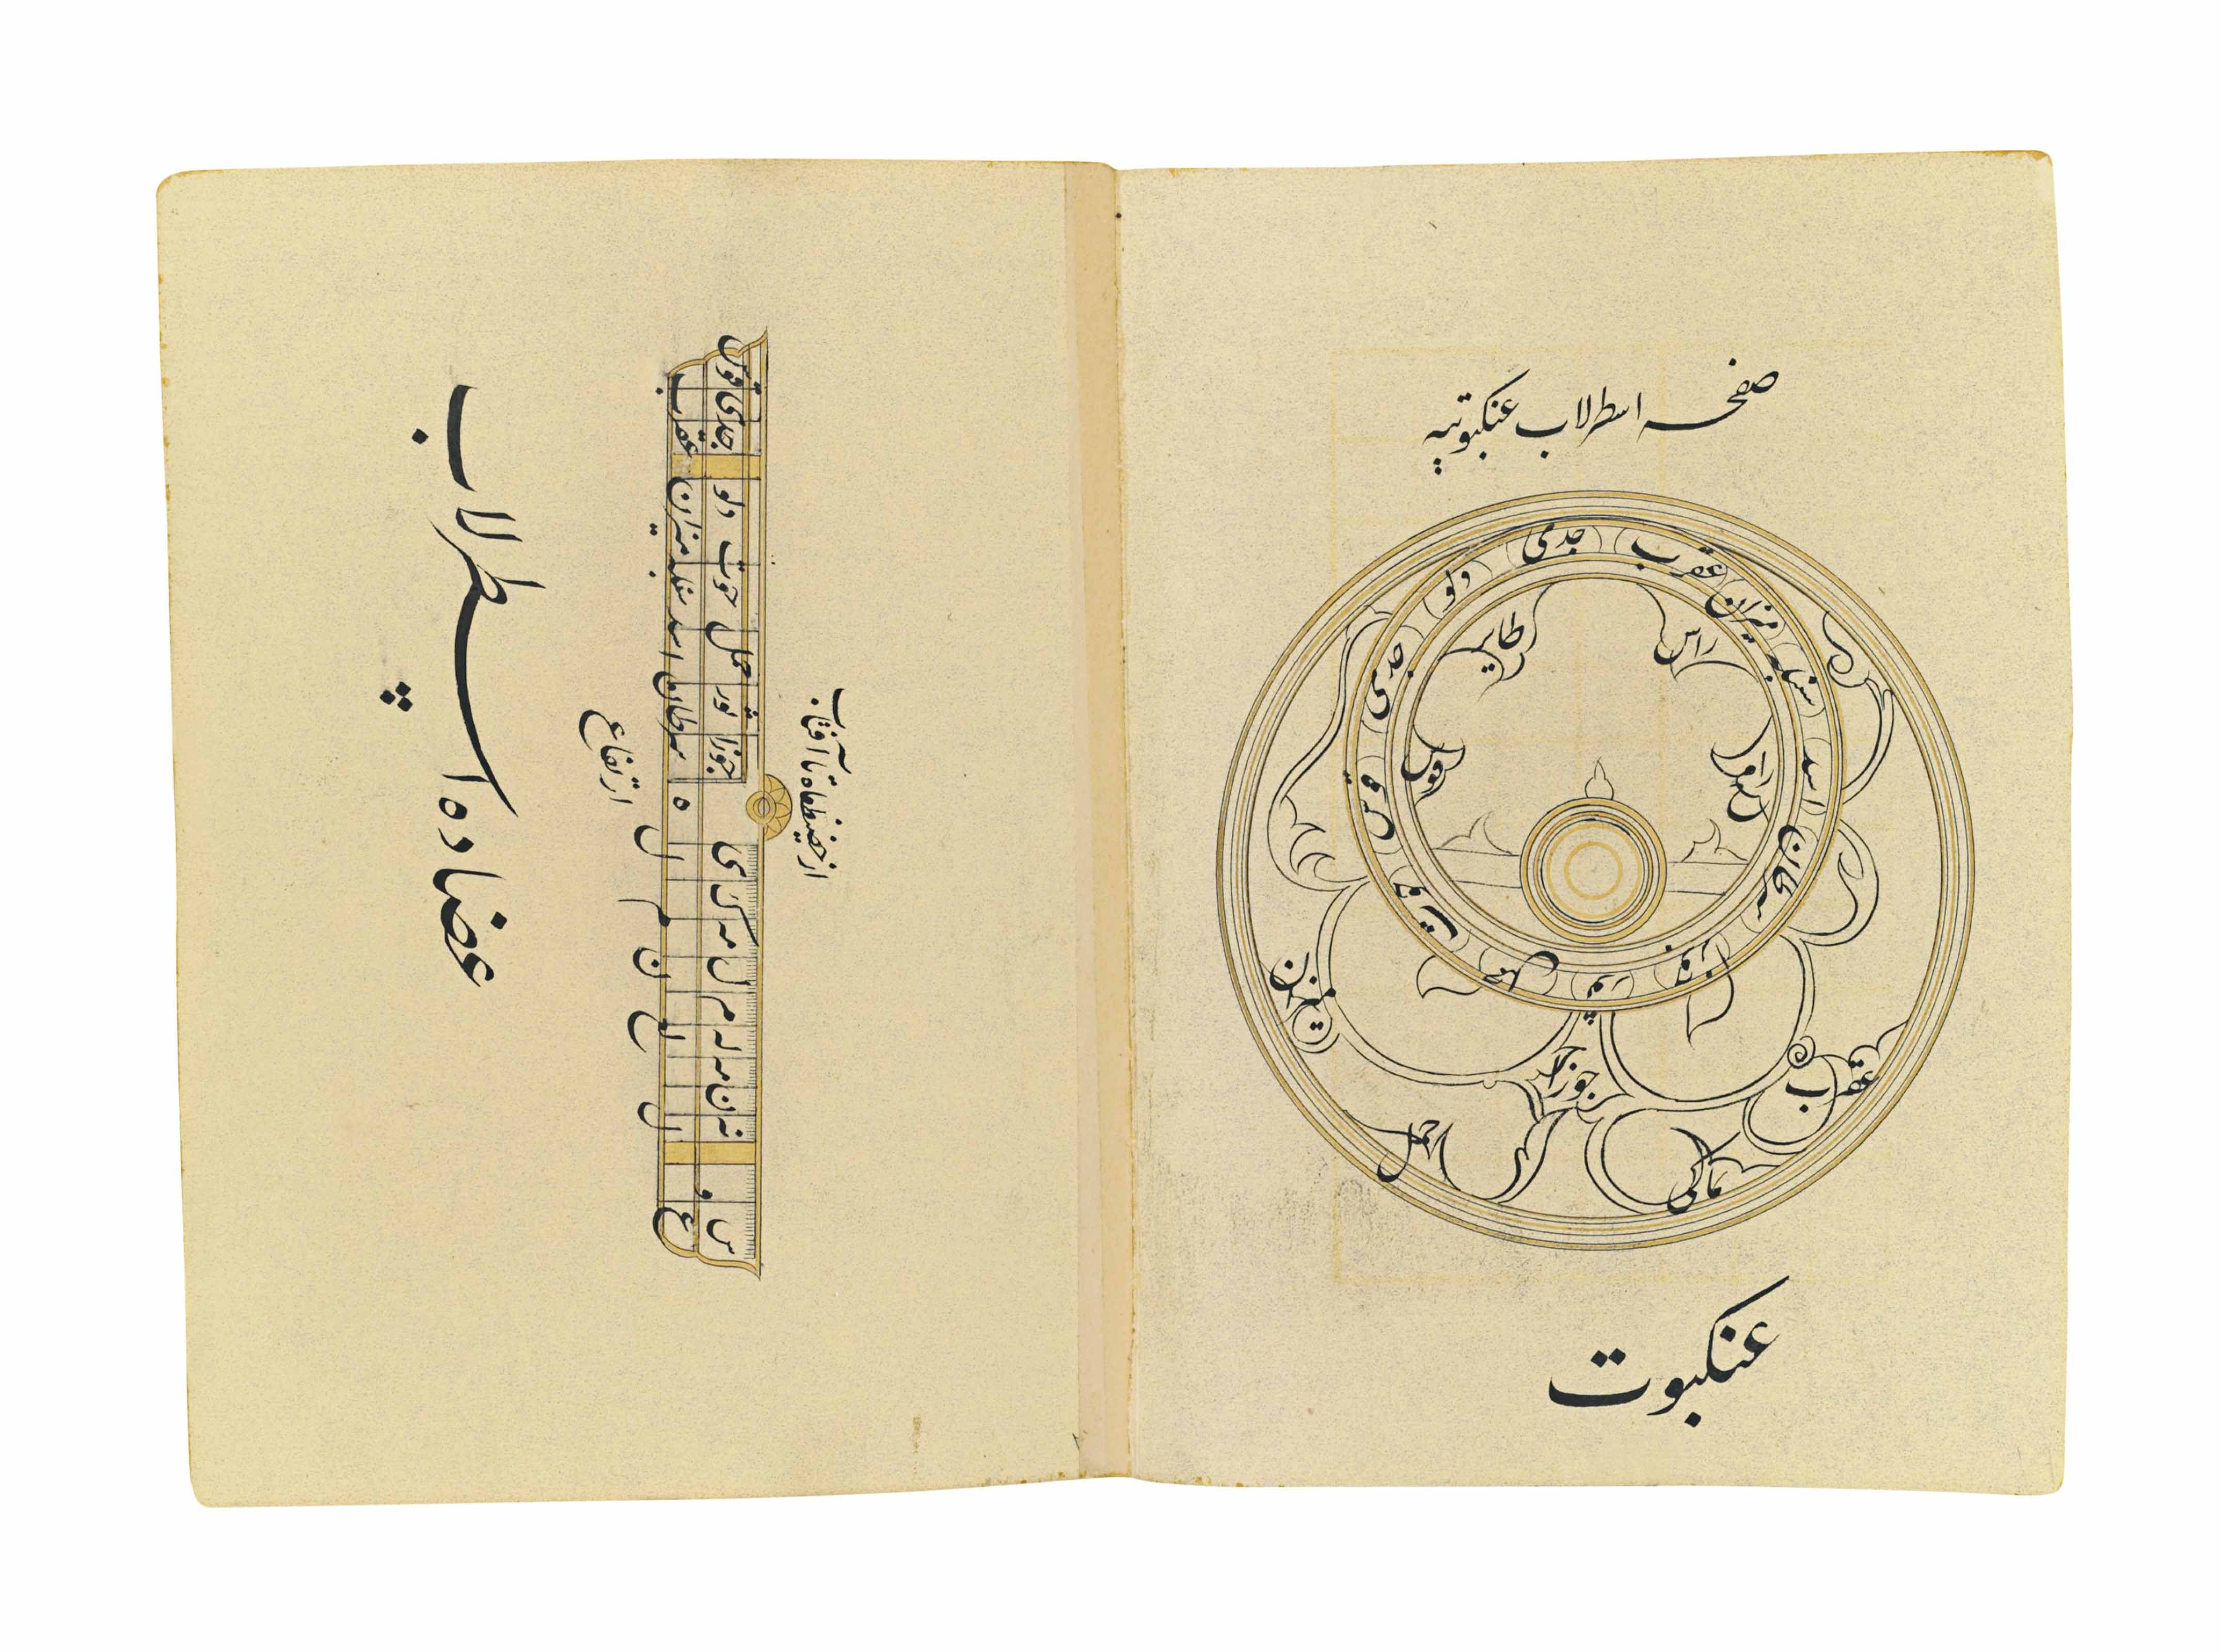 A MANUSCRIPT ON THE WORKINGS OF THE ASTROLABE